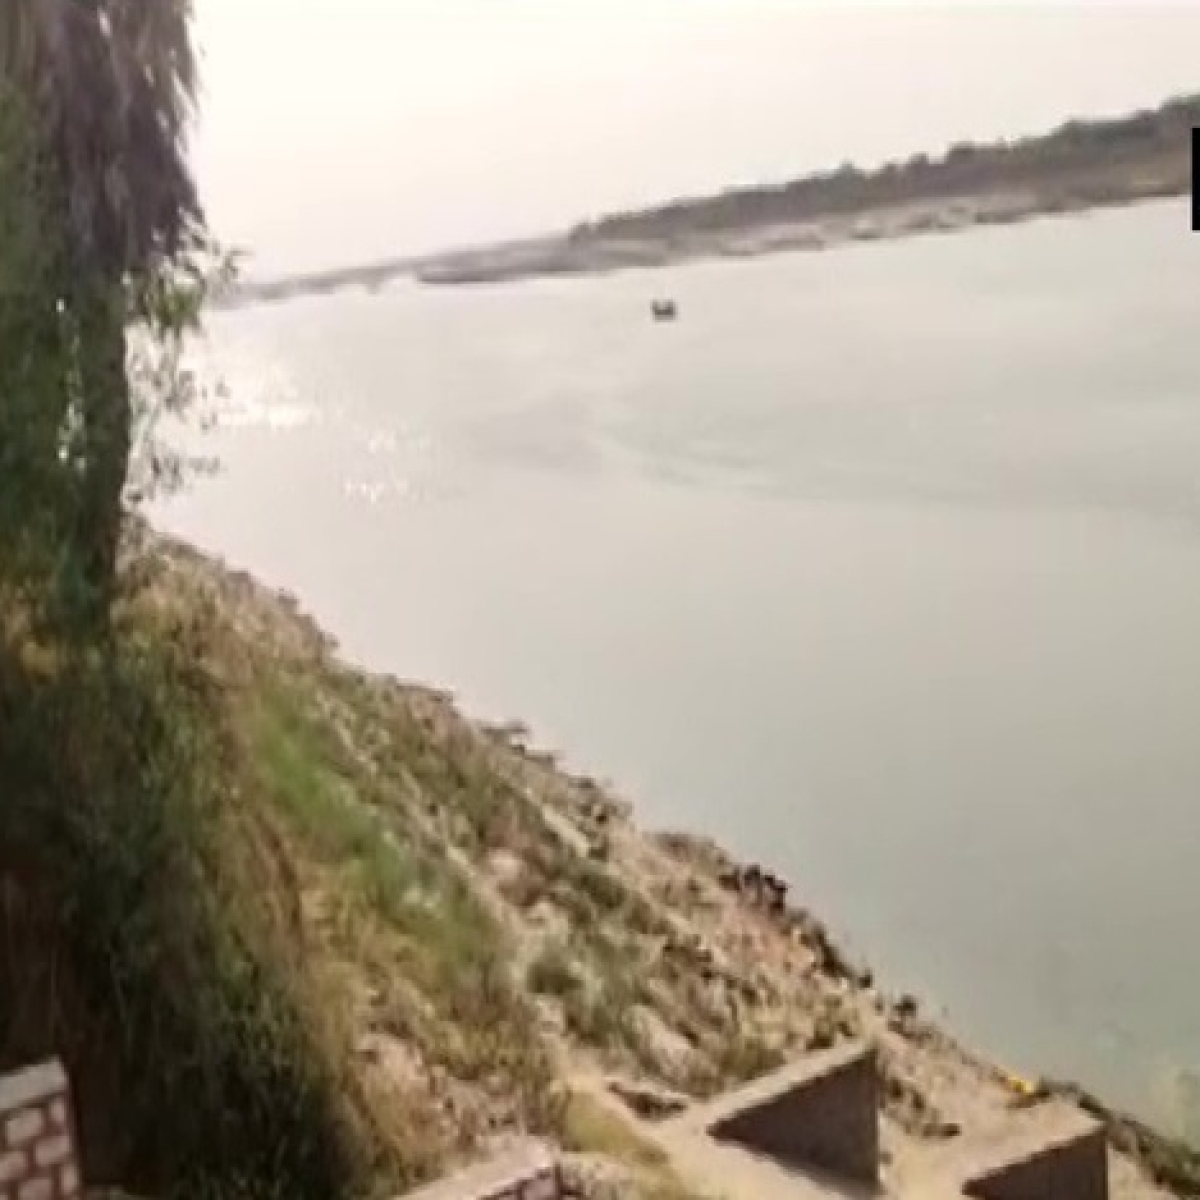 Floating dead bodies in Ganga: Ghazipur and Buxar district magistrates play blame games